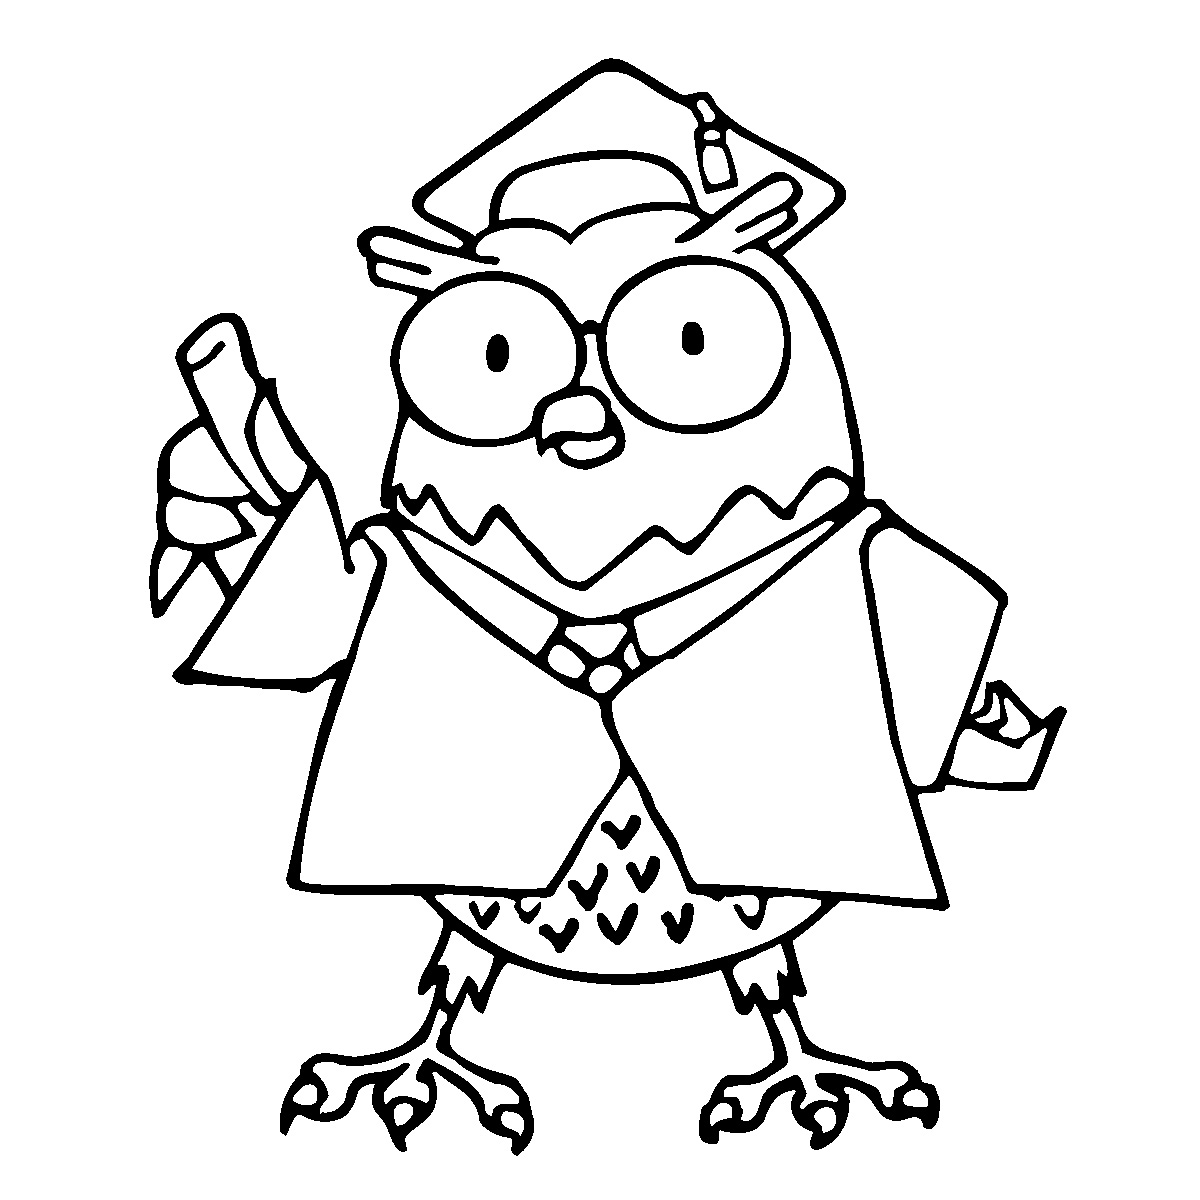 Owl Teacher Clipart Black And White.